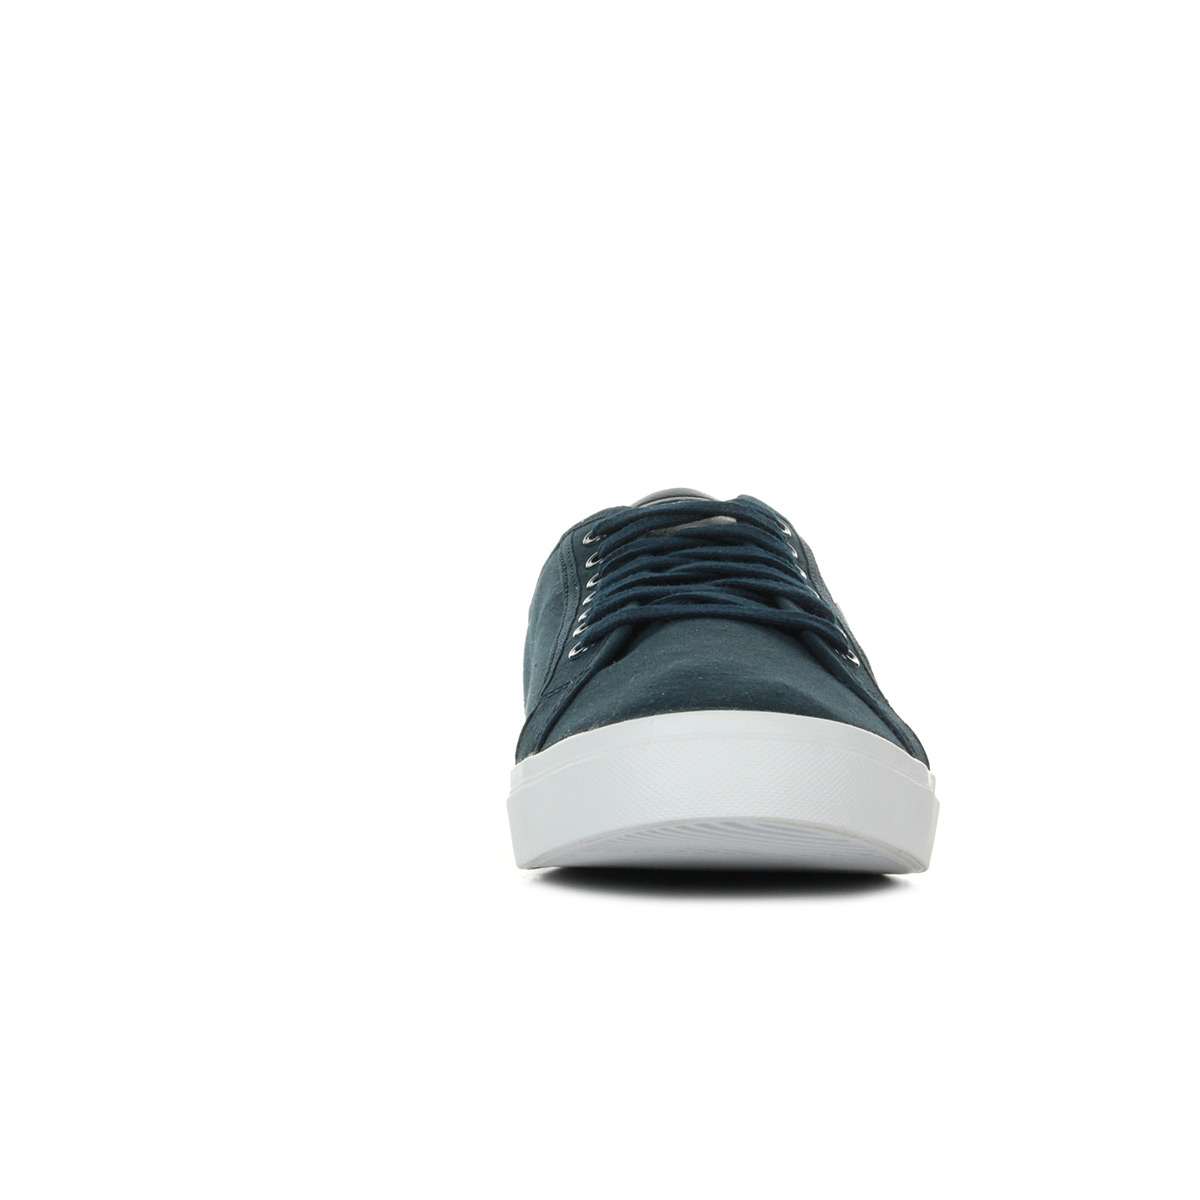 Le Coq Sportif Ares BBR 1810756, Baskets mode homme